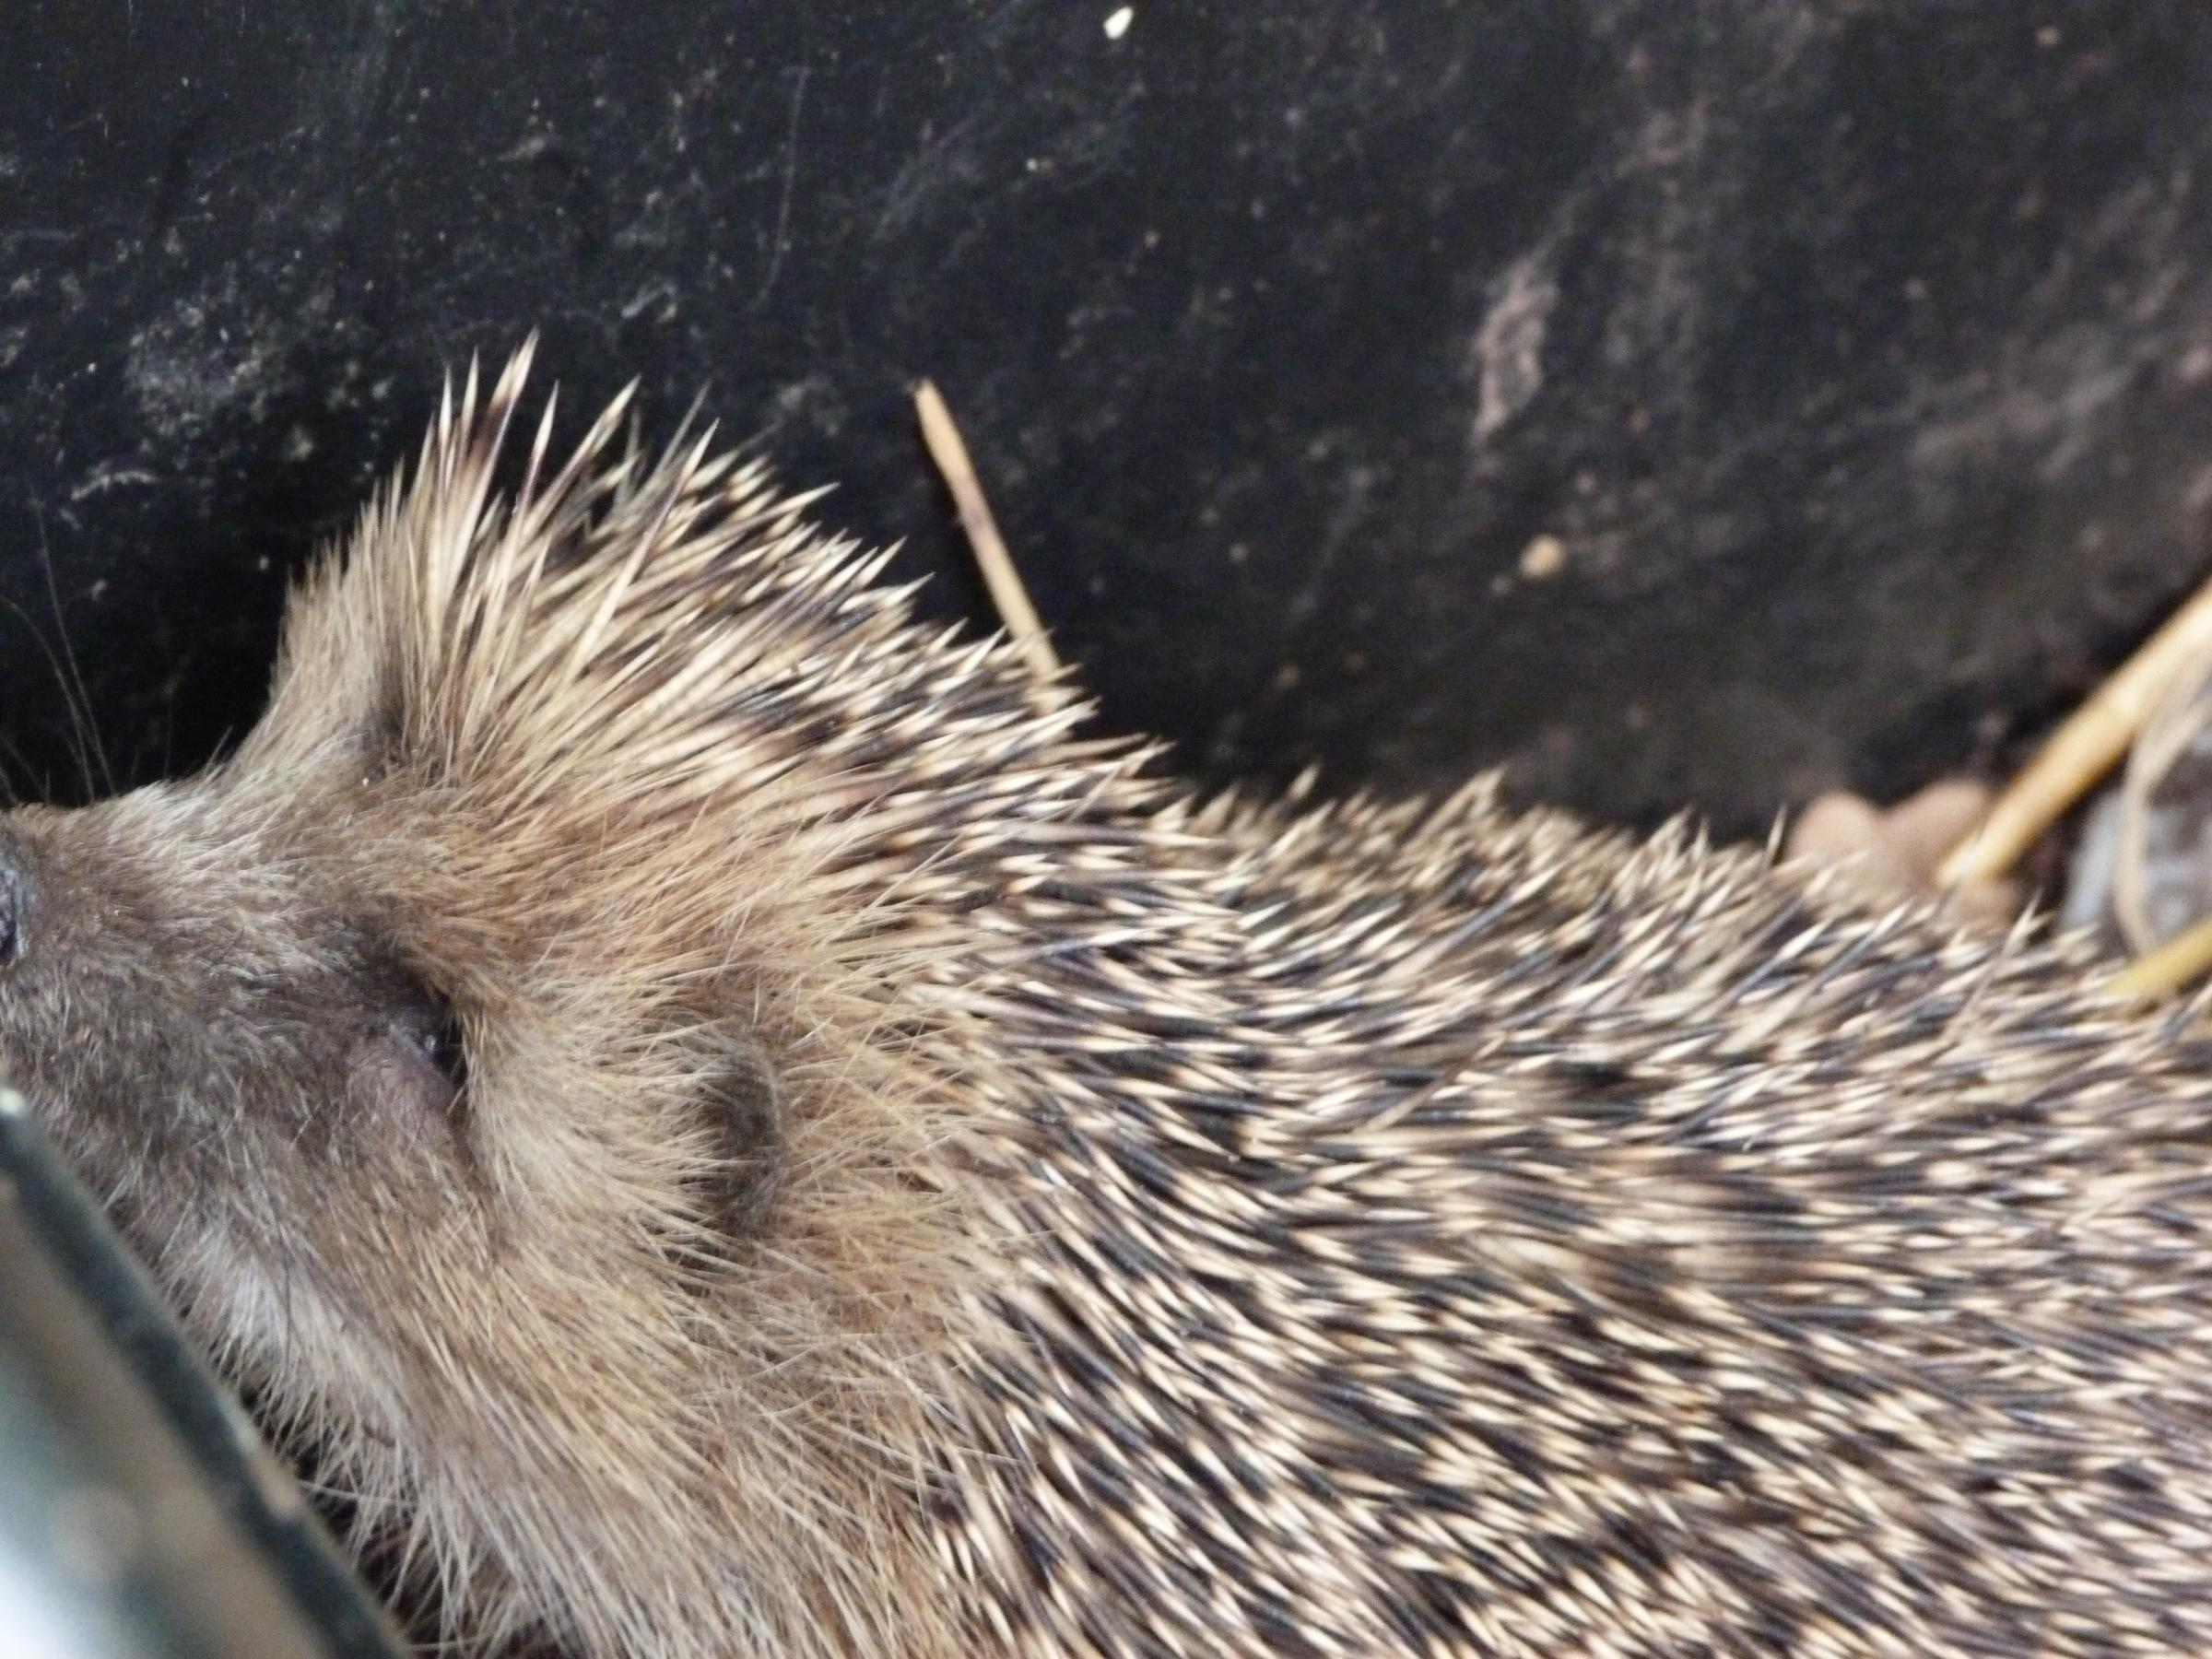 Spikey on the mend